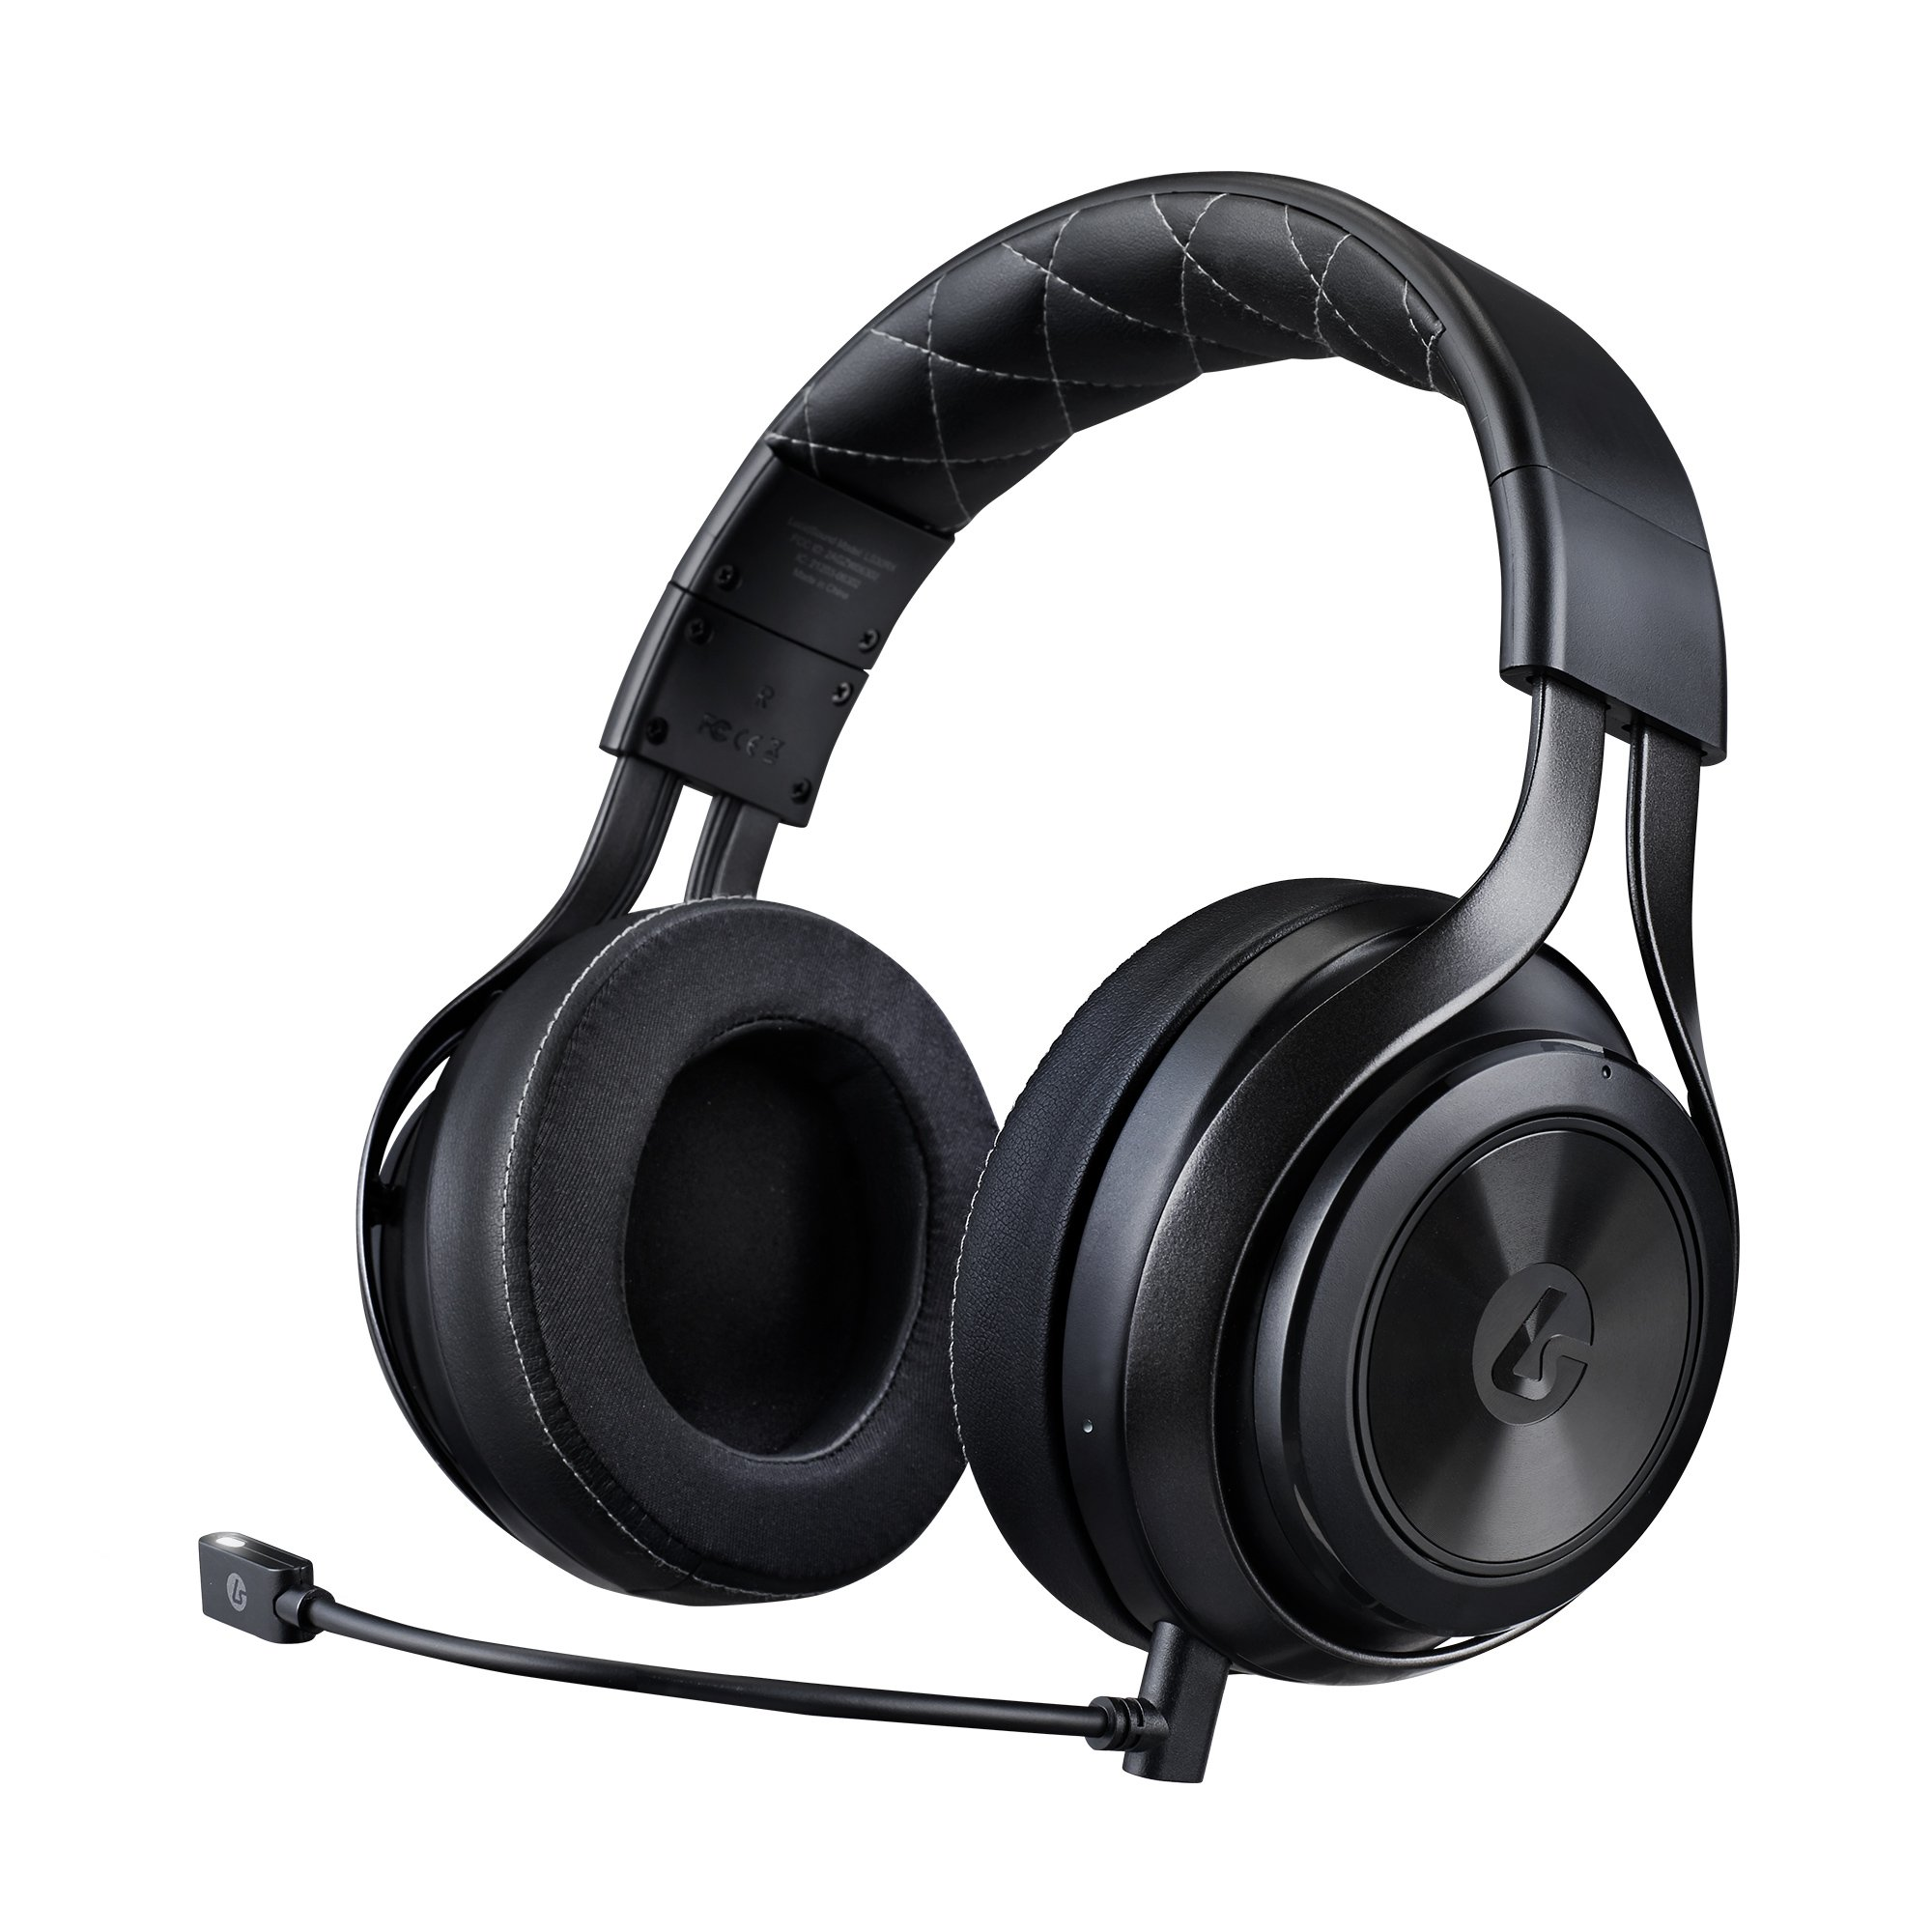 LucidSound LS35X Officially Licensed Wireless Surround Sound Xbox Gaming Headset - Xbox One, Windows 10, Mobile - Xbox One by LucidSound